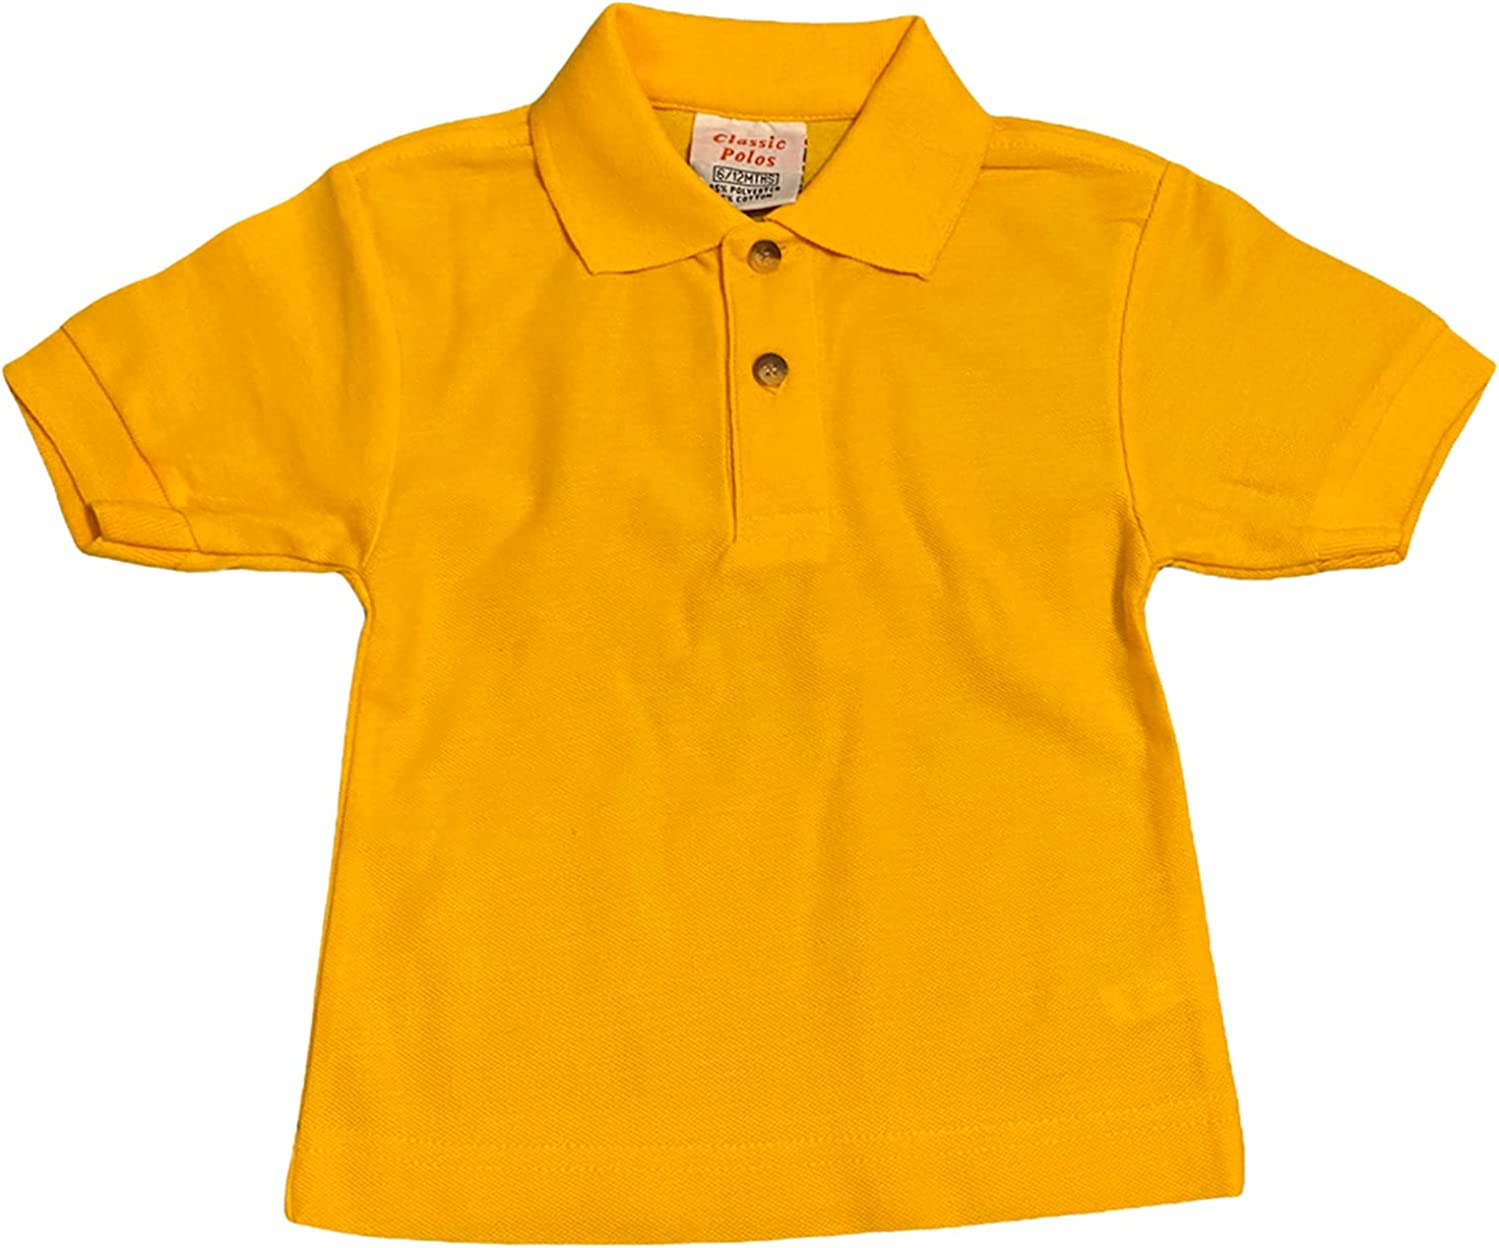 Baby Toddler Colourful Plain Classic Polo T-Shirts, Short Sleeves, Collared Summer Causal Top for Boys